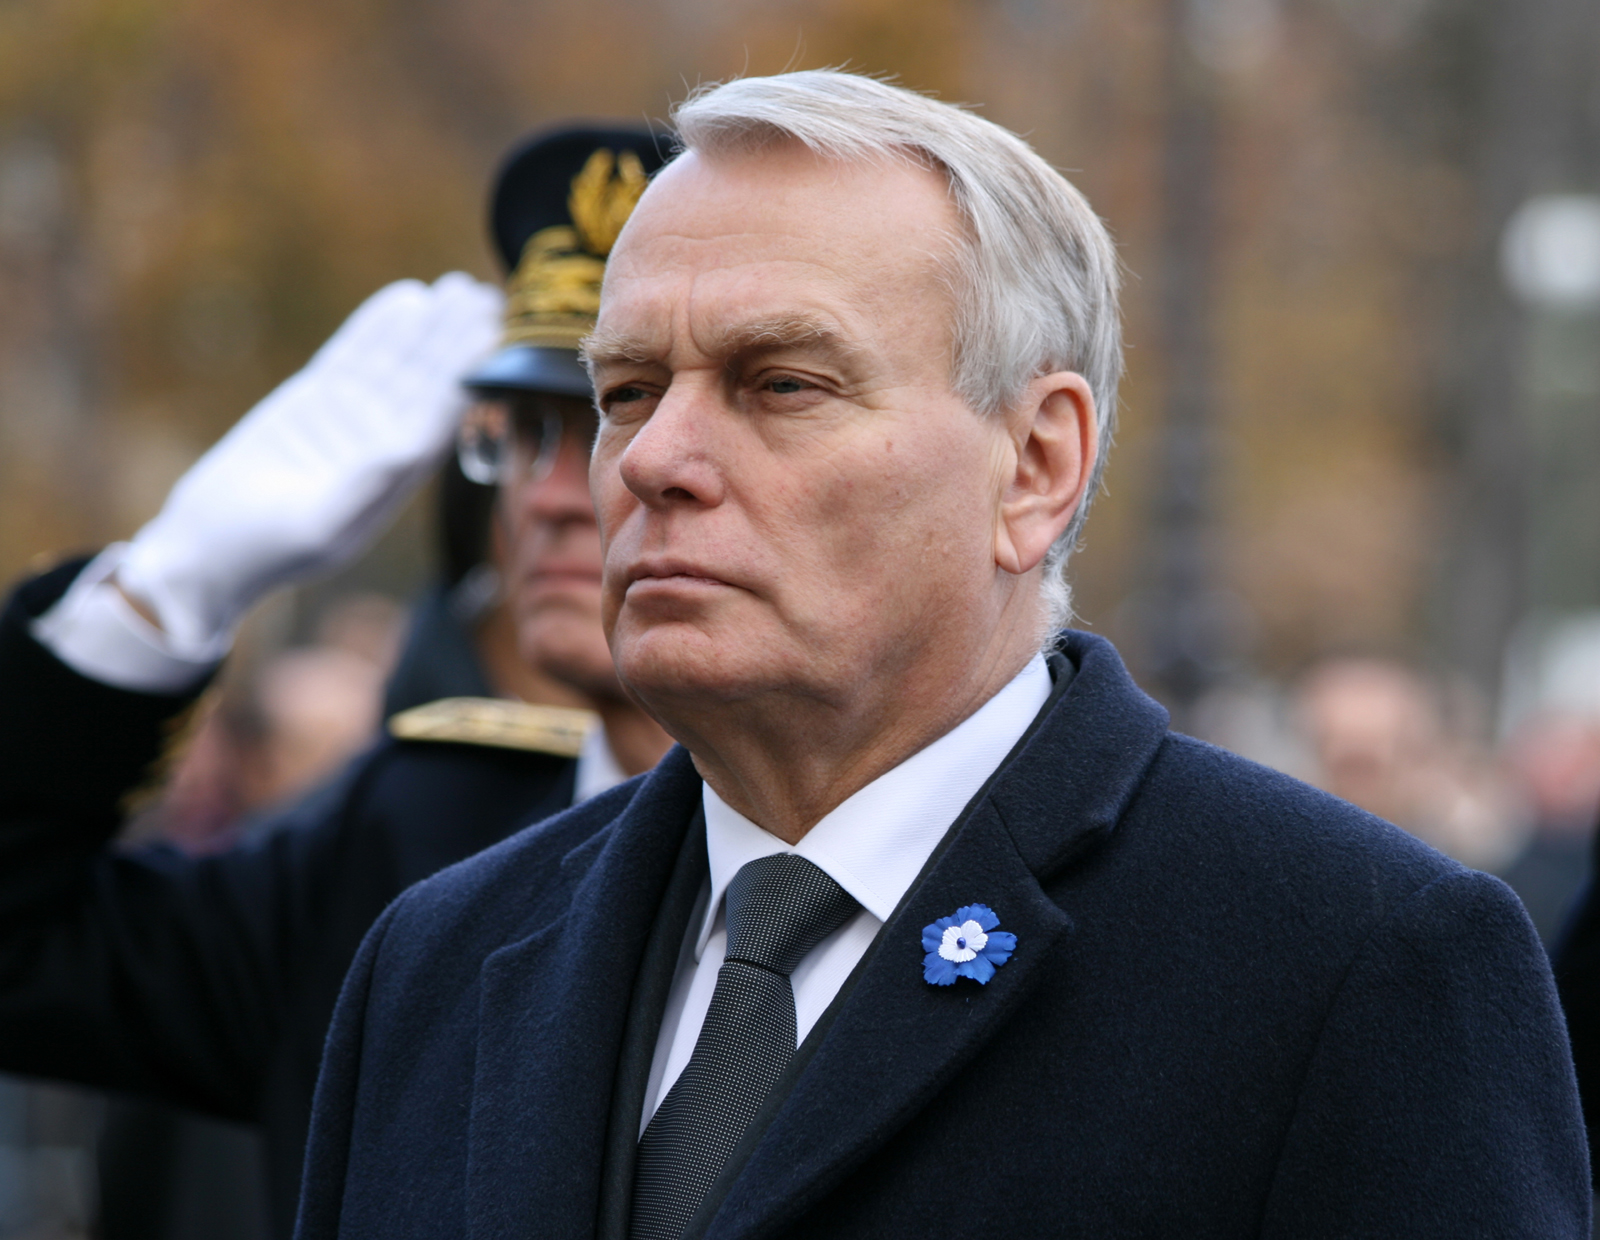 Jean-Marc Ayrault's quote #2